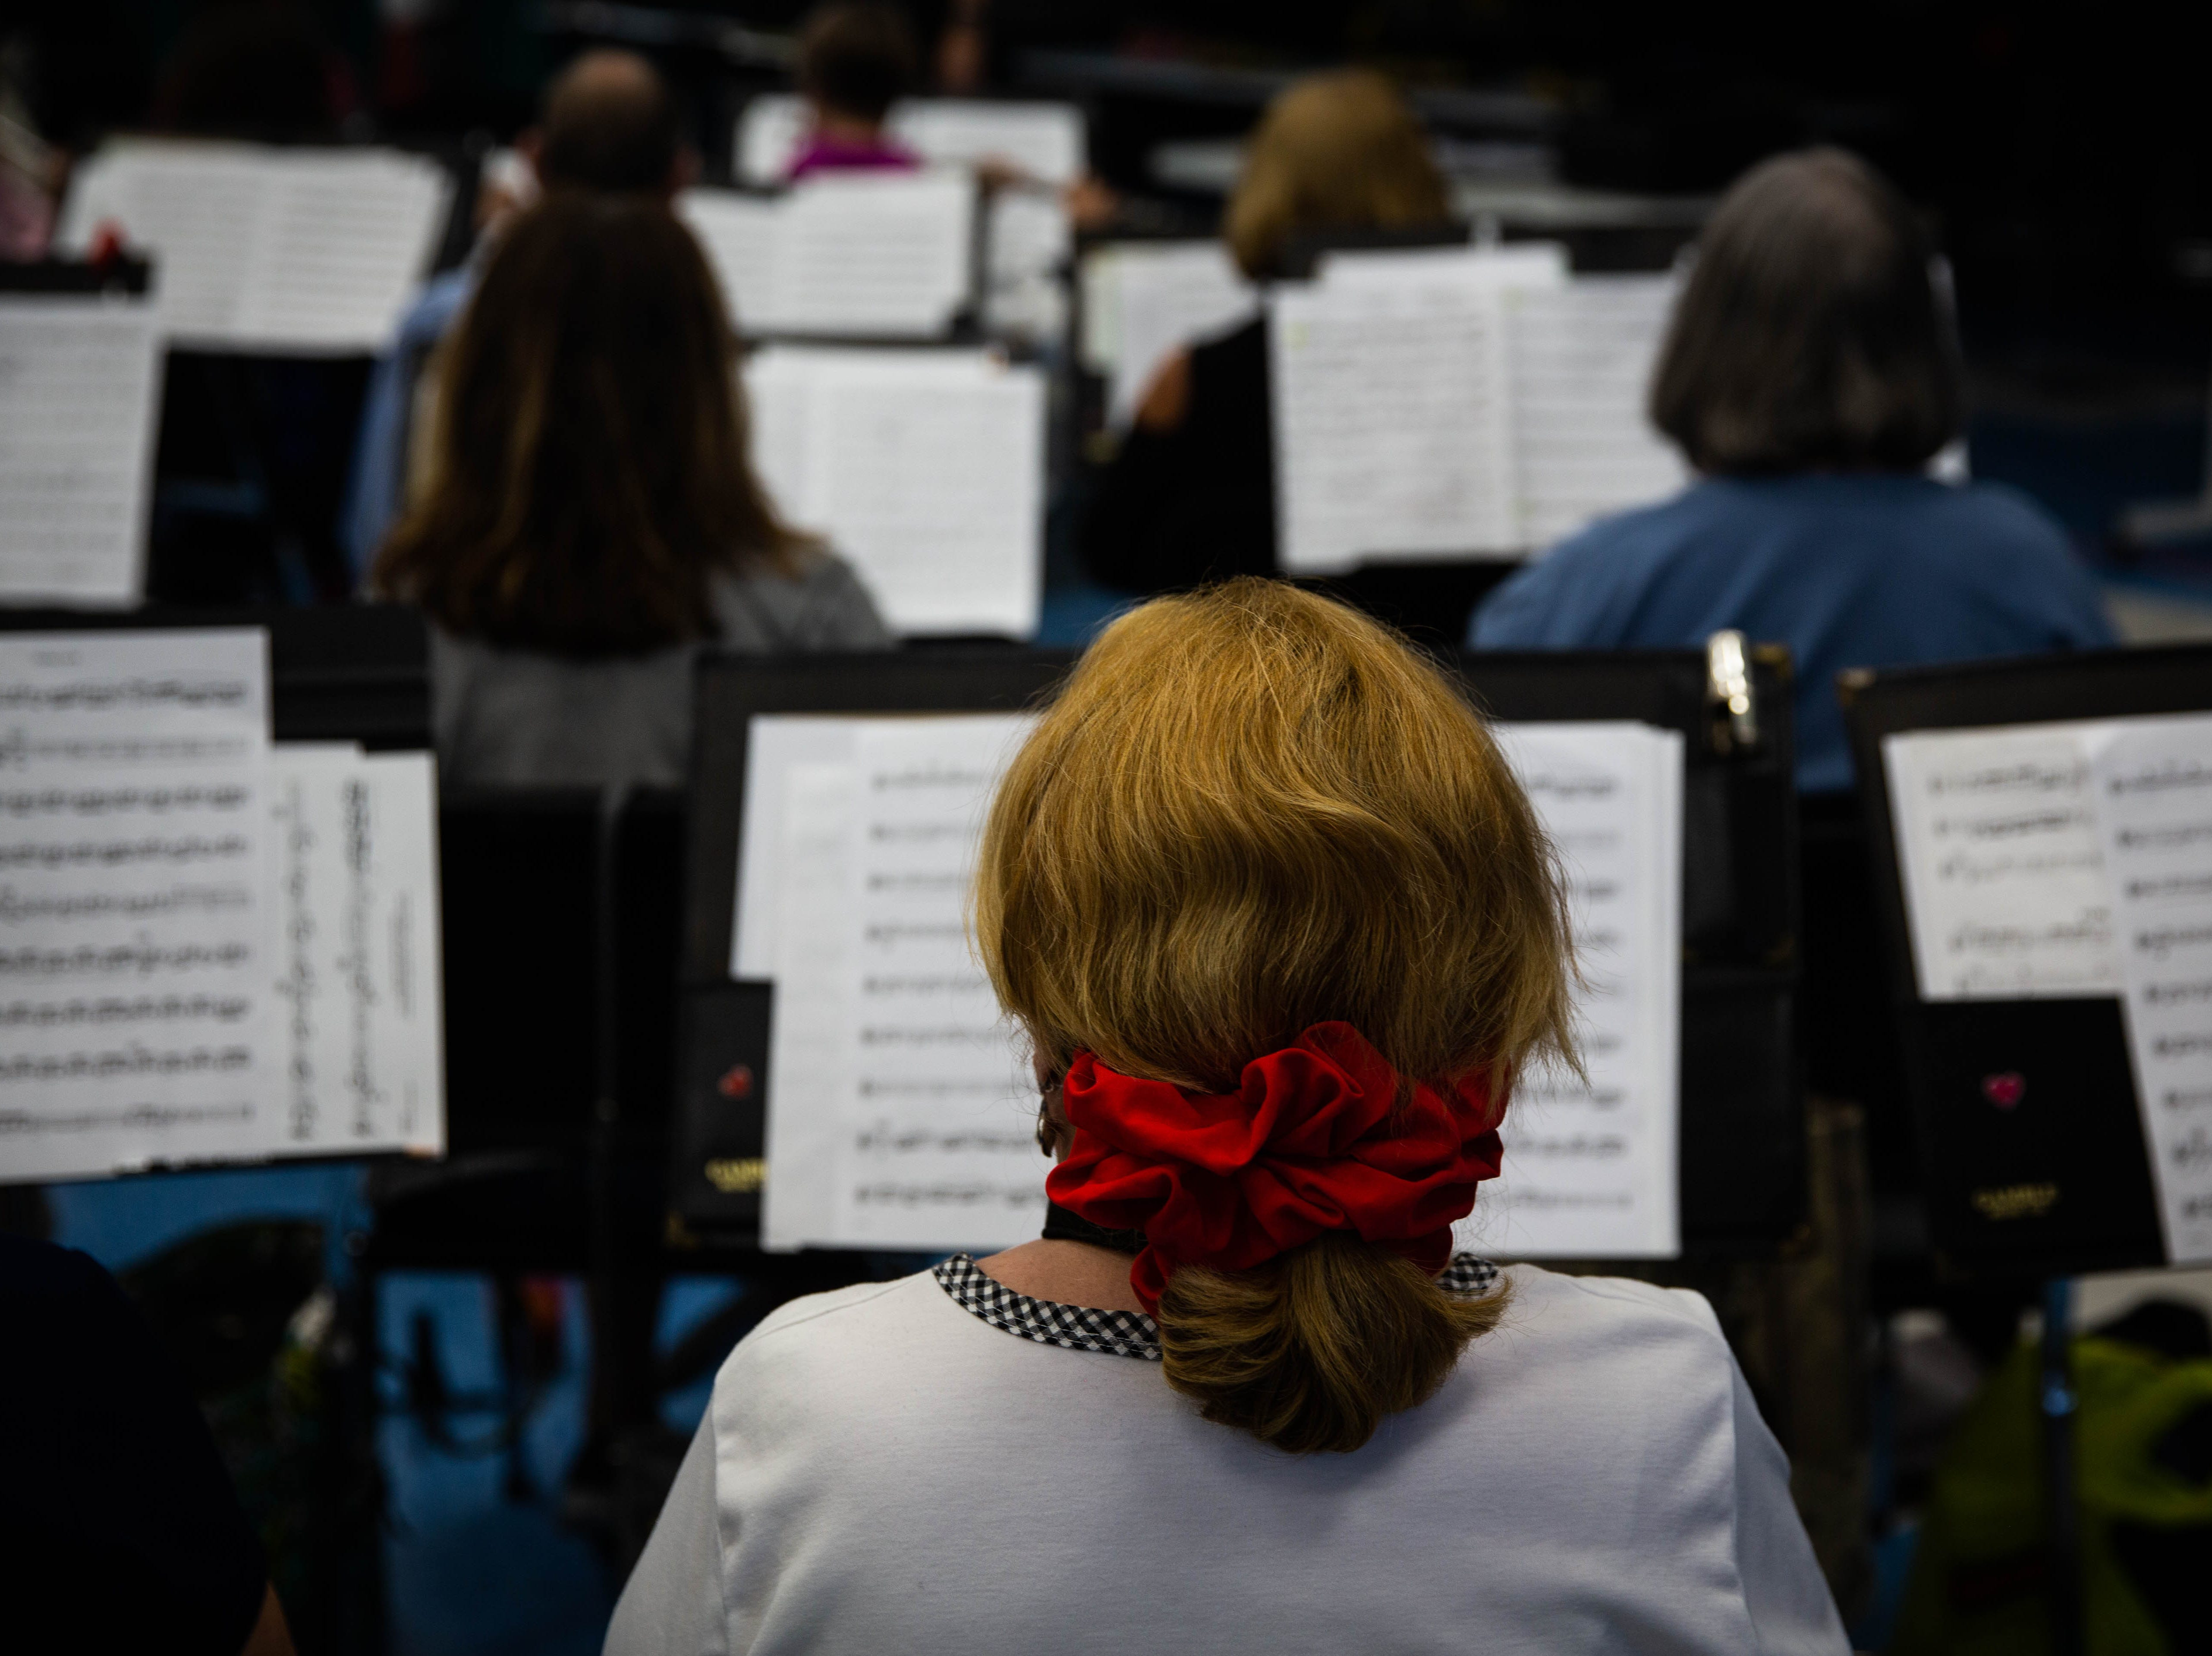 The Naples Concert Band practices at Gulfview Middle School on April 9, 2019.